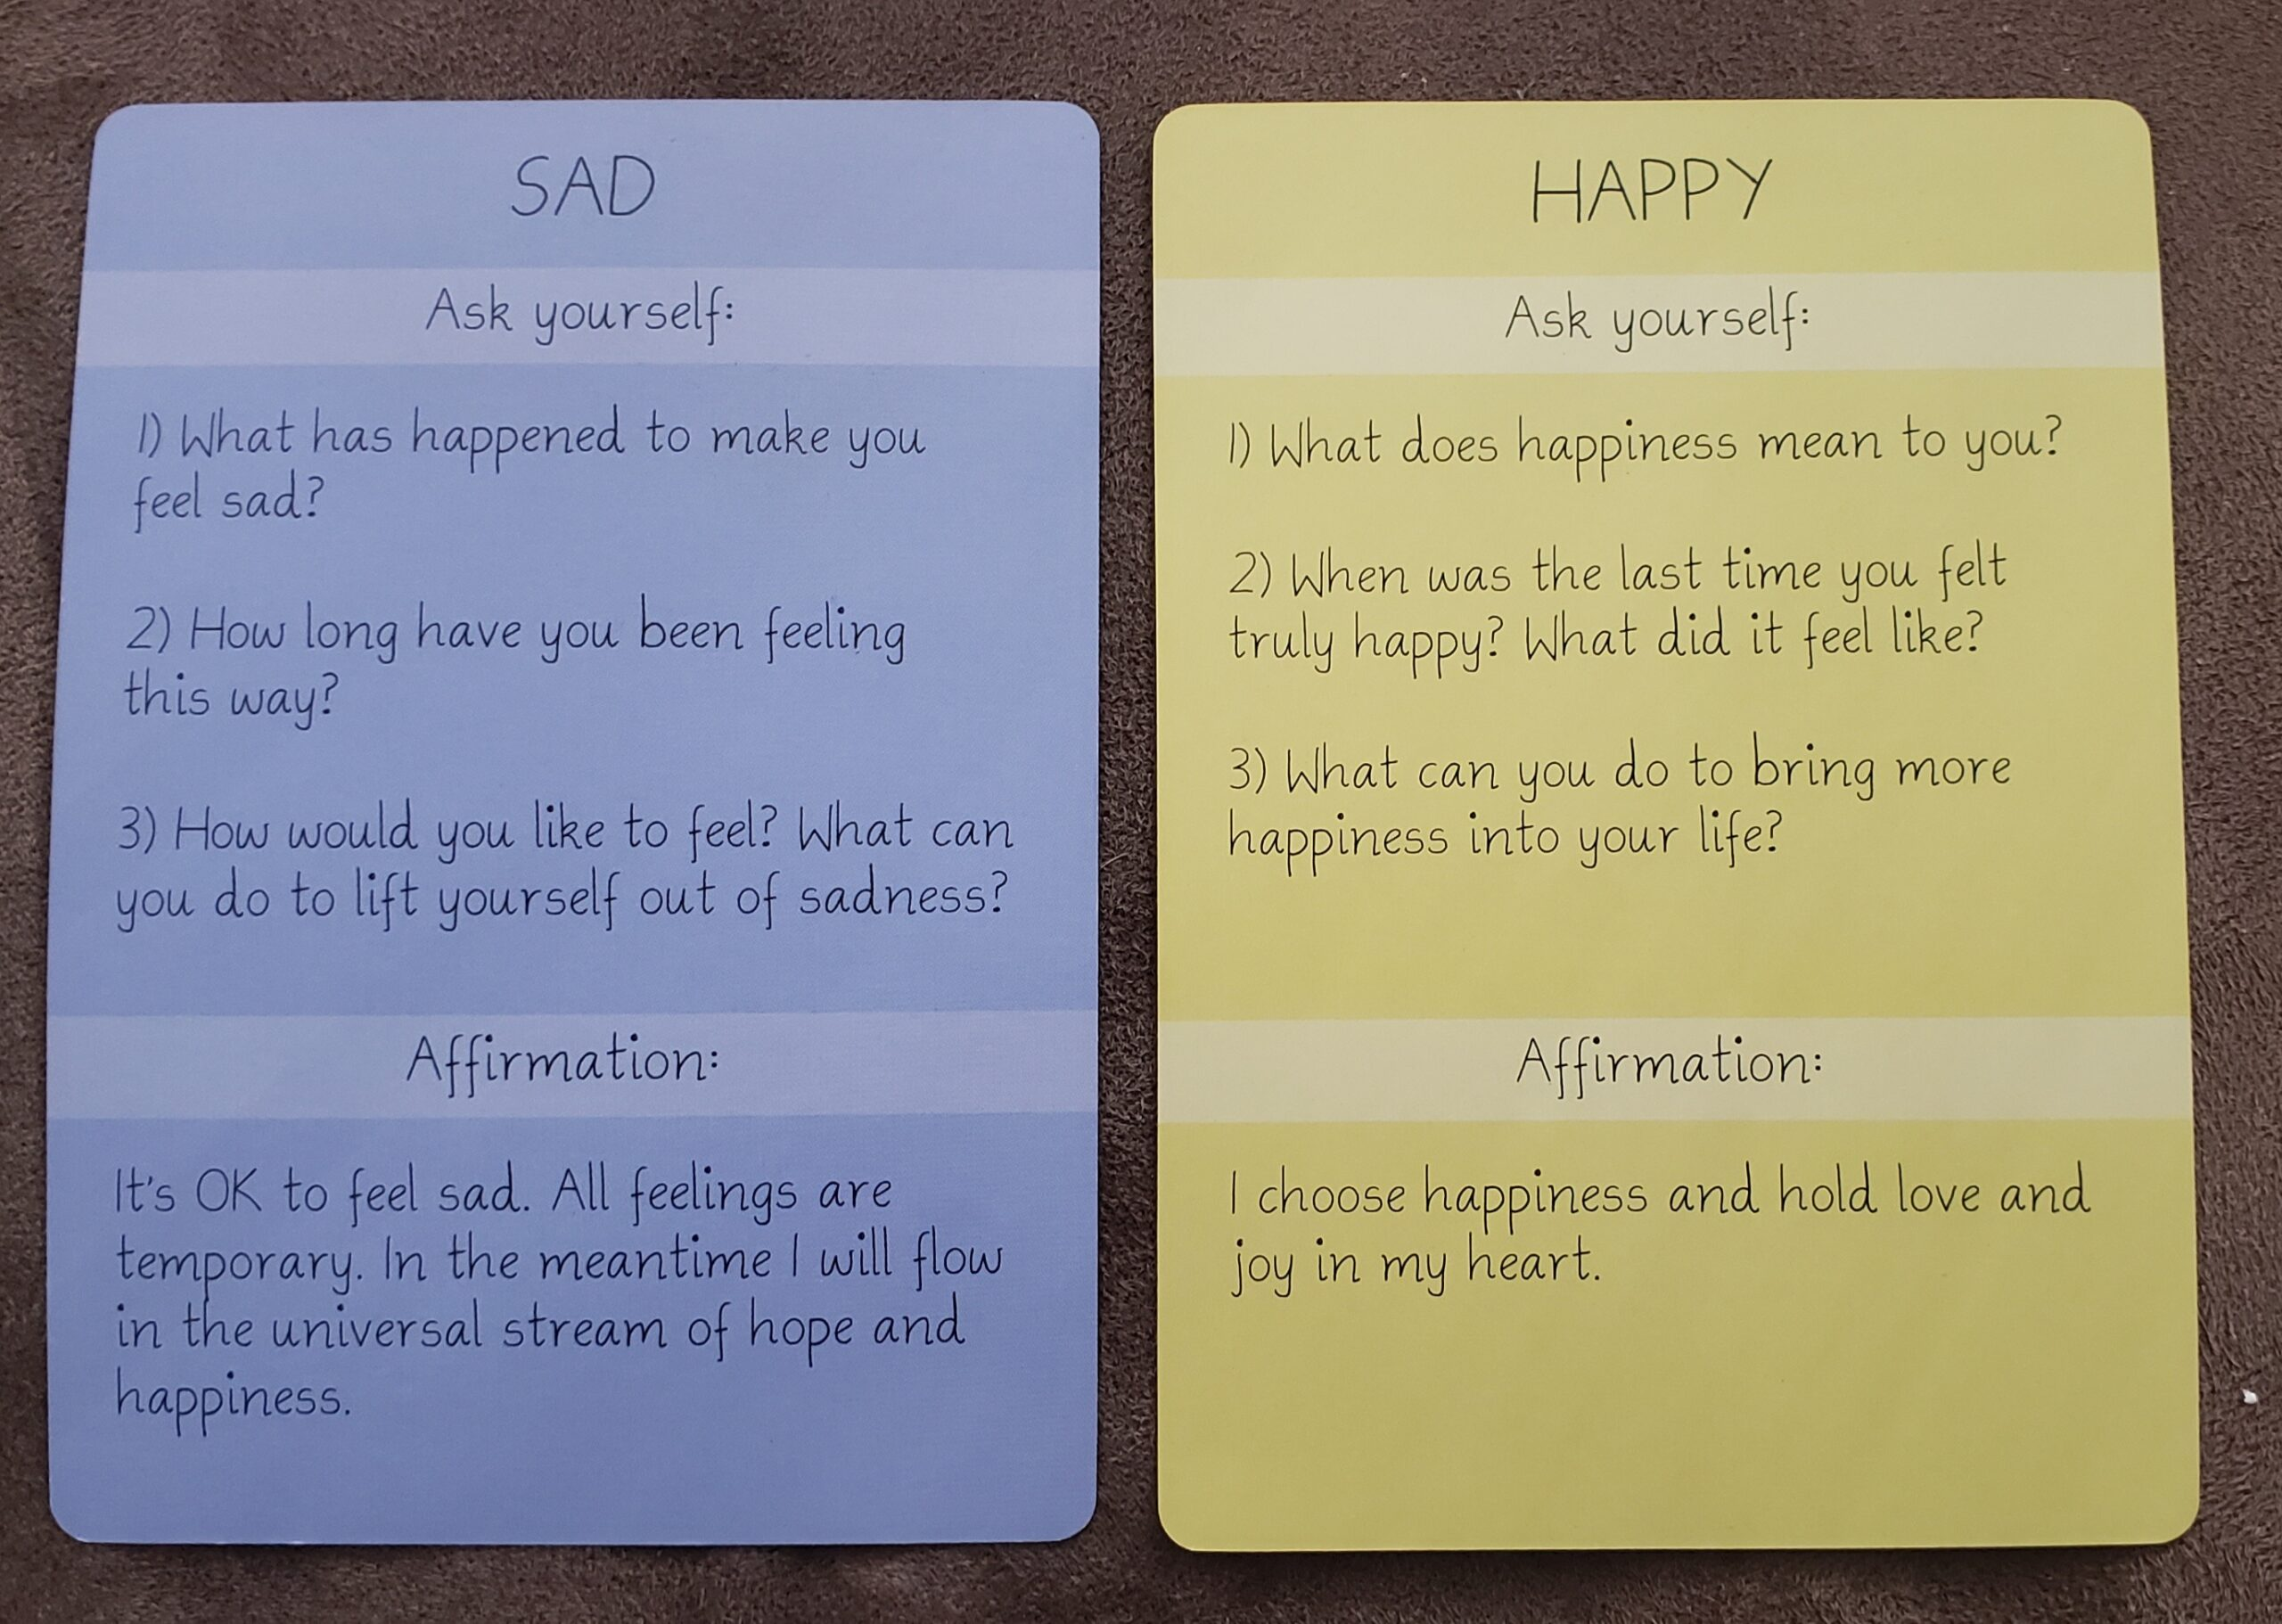 sad and happy cards back